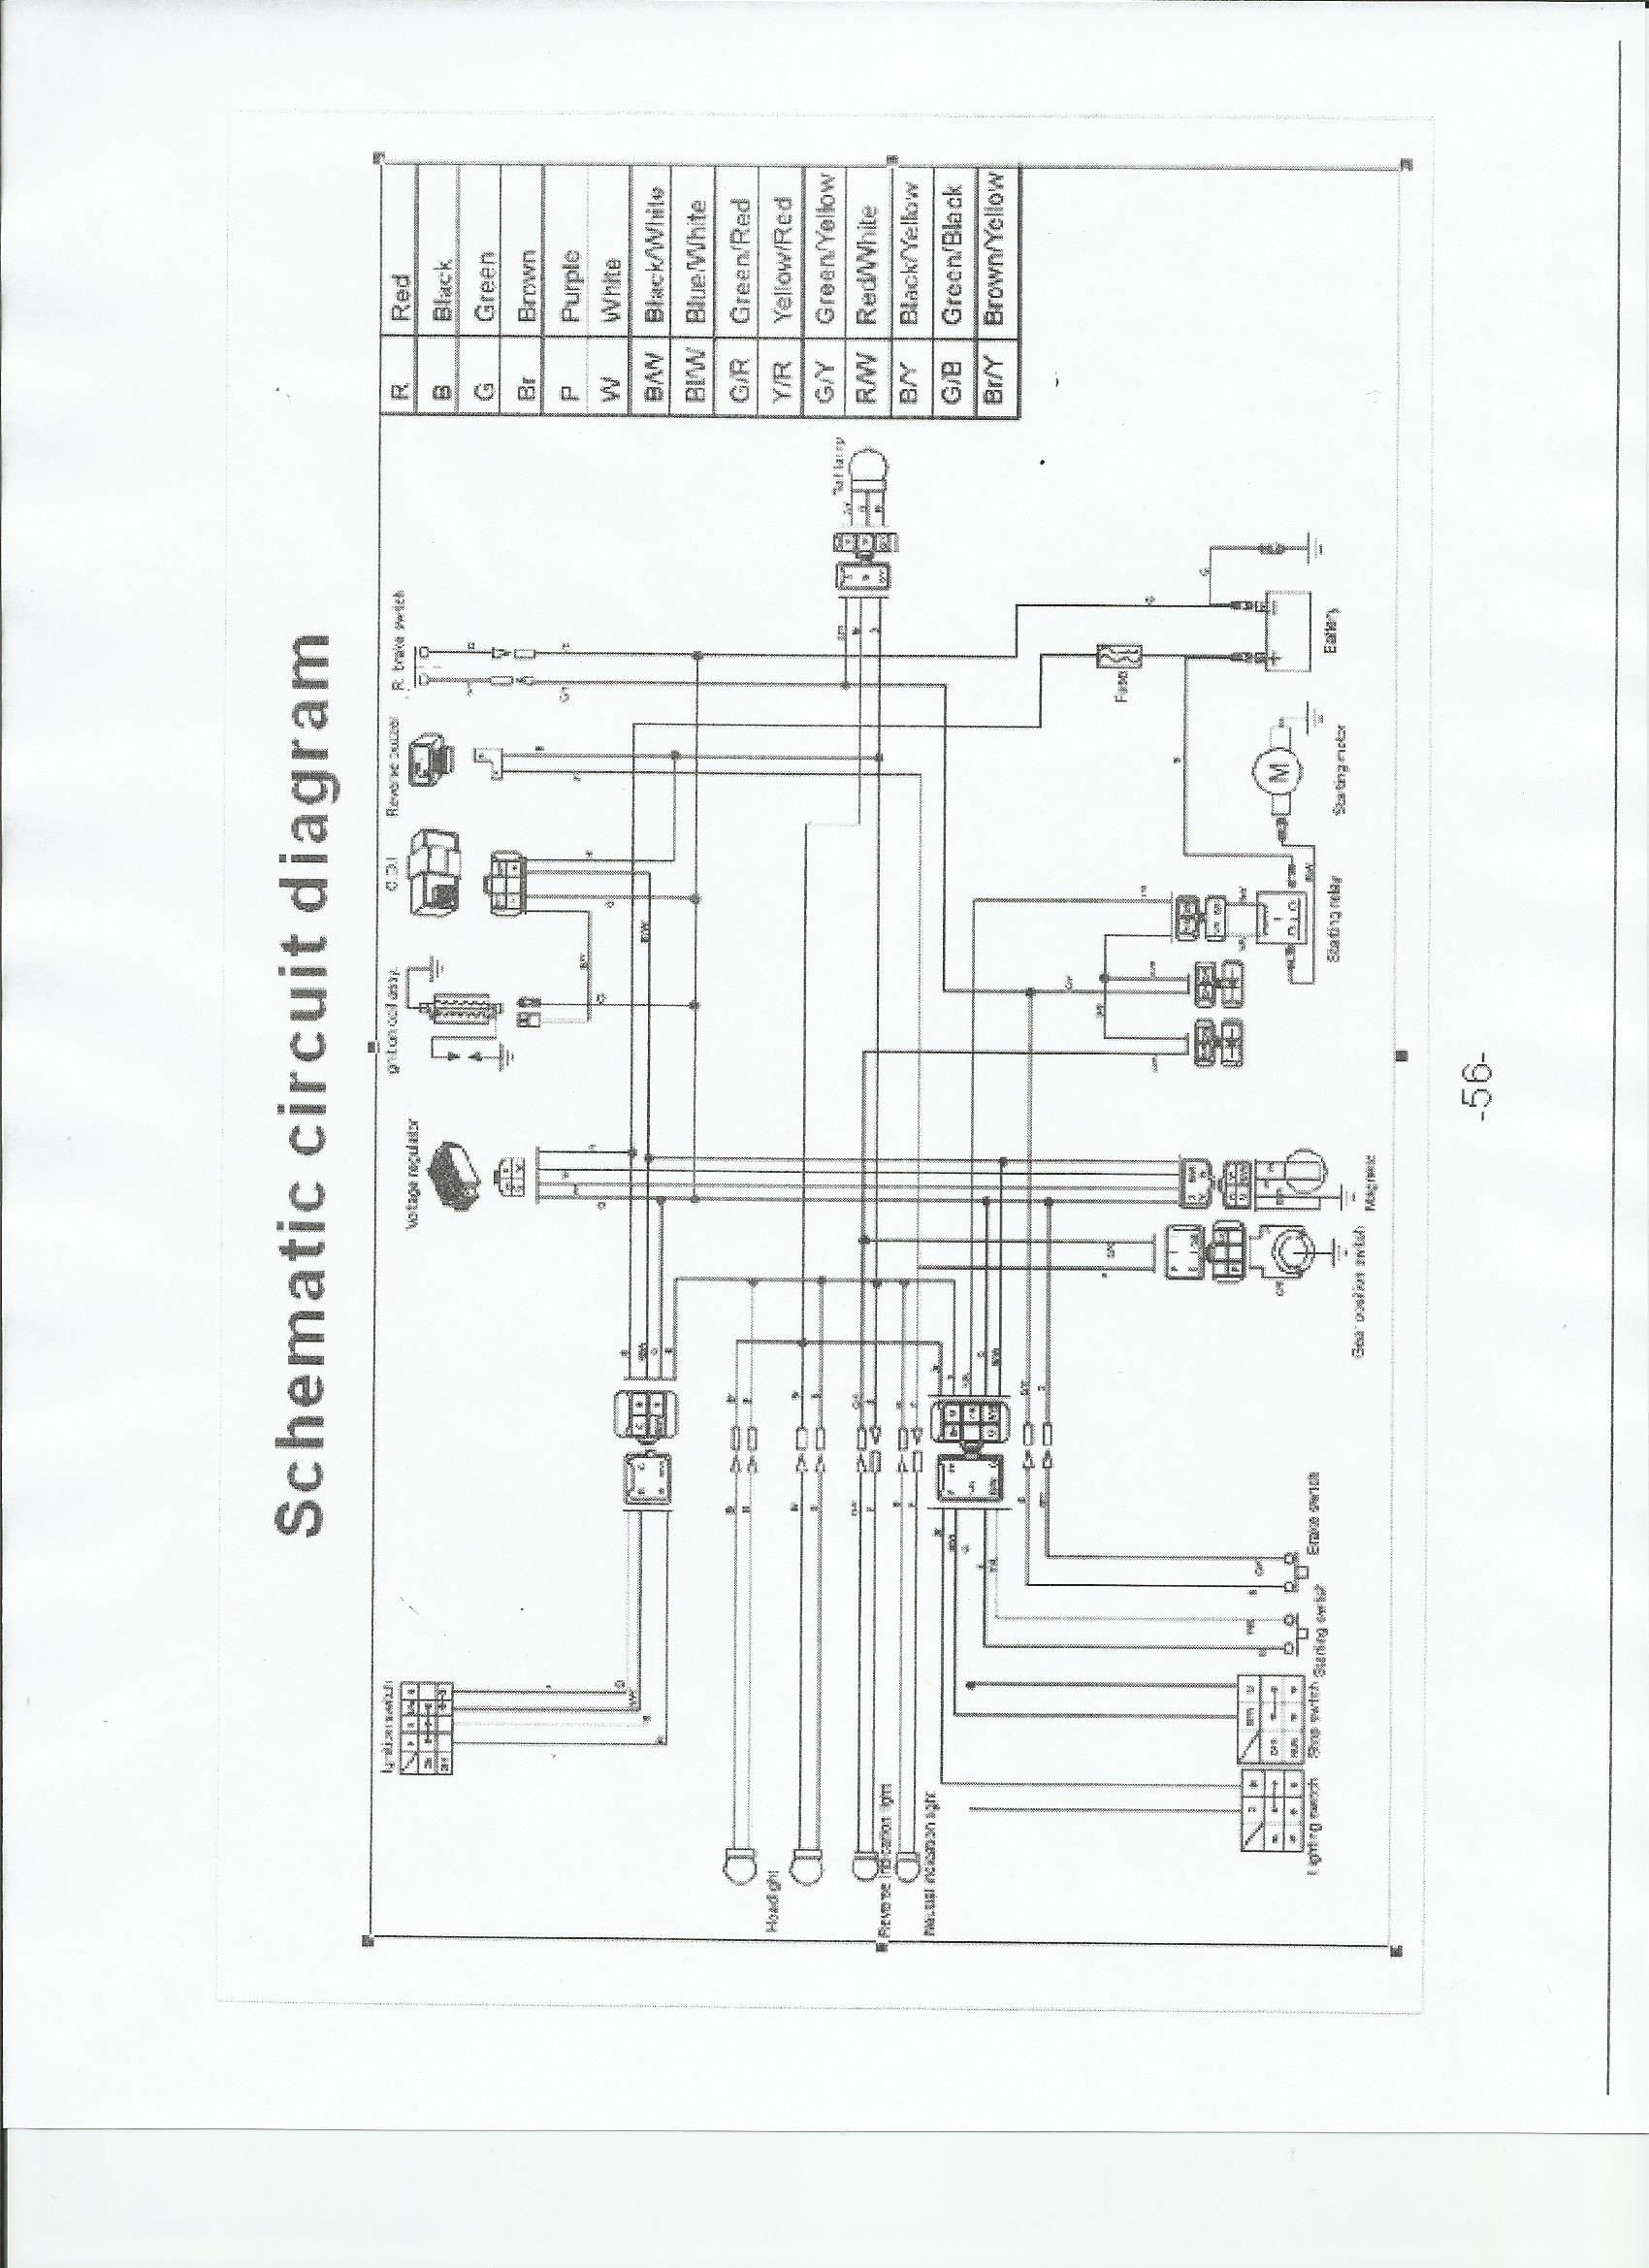 How 4708883 repair Jayco C er Cables furthermore Wiring Diagram For Haulmark Trailers further Wiring Diagram For 1986 Toyota C ing further 1 besides Dodge Electron02. on starcraft travel trailer wiring diagram